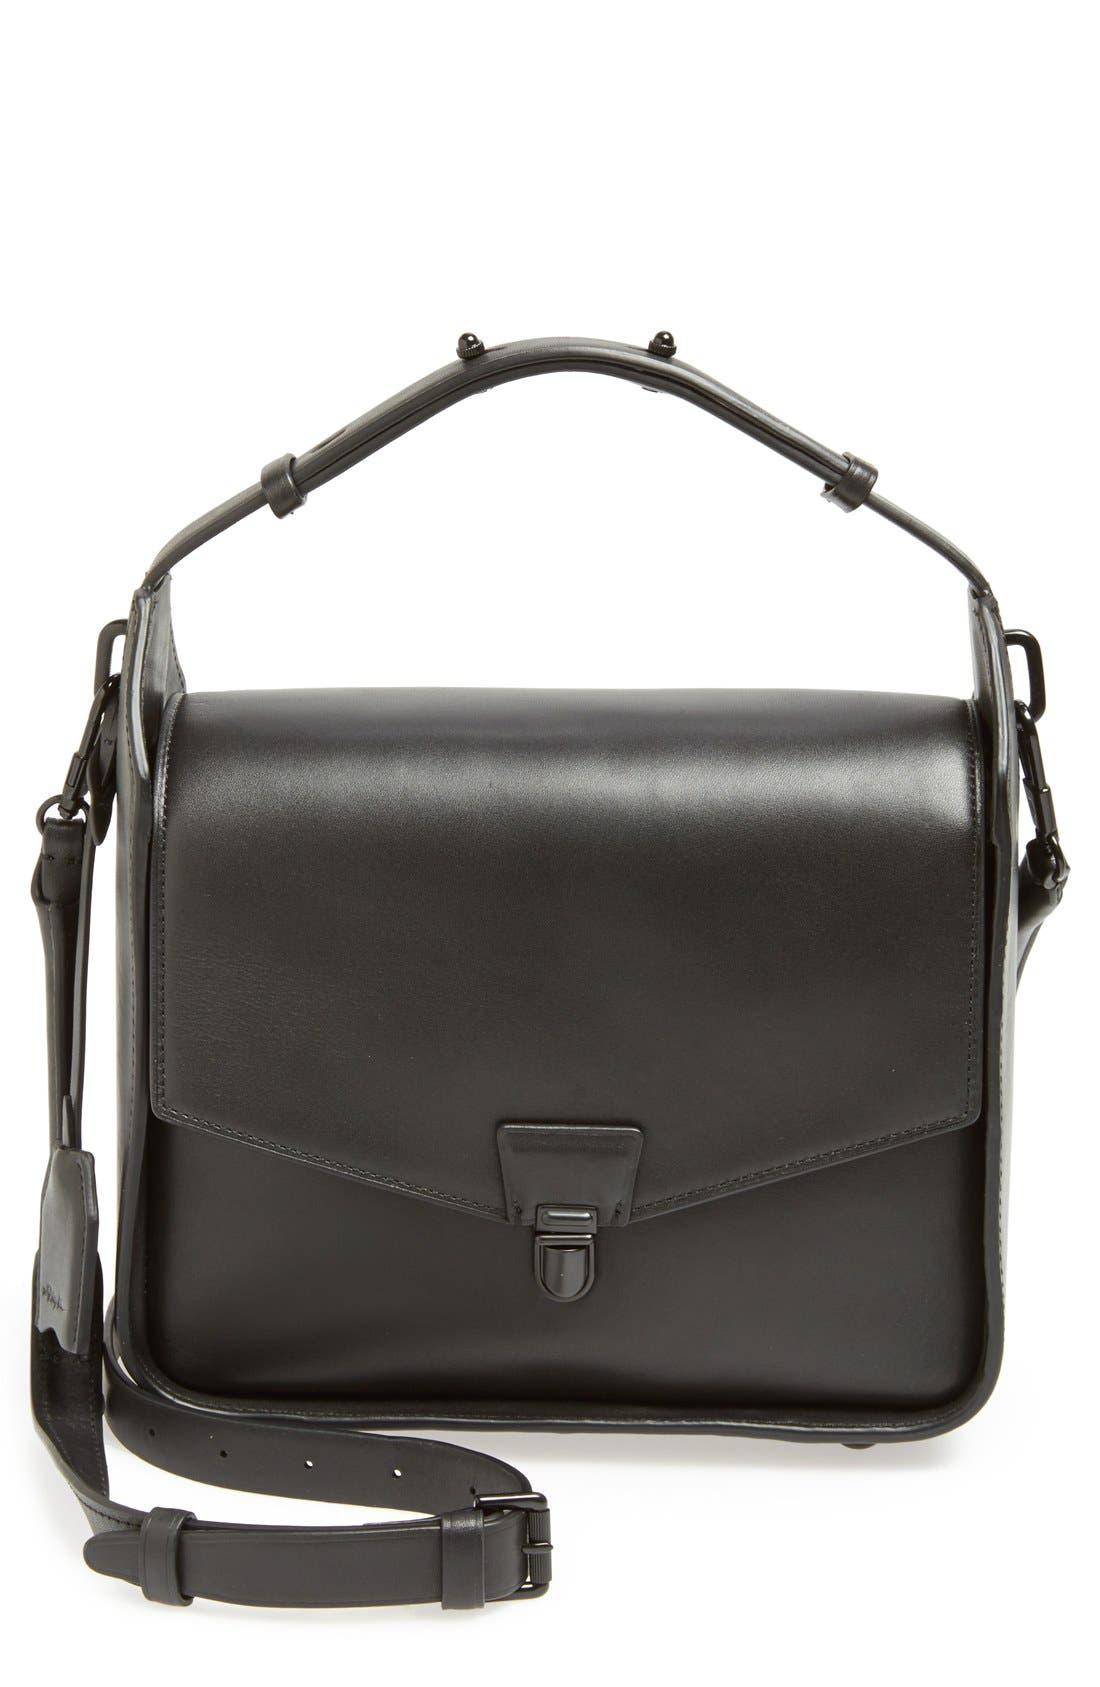 Main Image - 3.1 Phillip Lim 'Wednesday' Leather Shoulder Bag